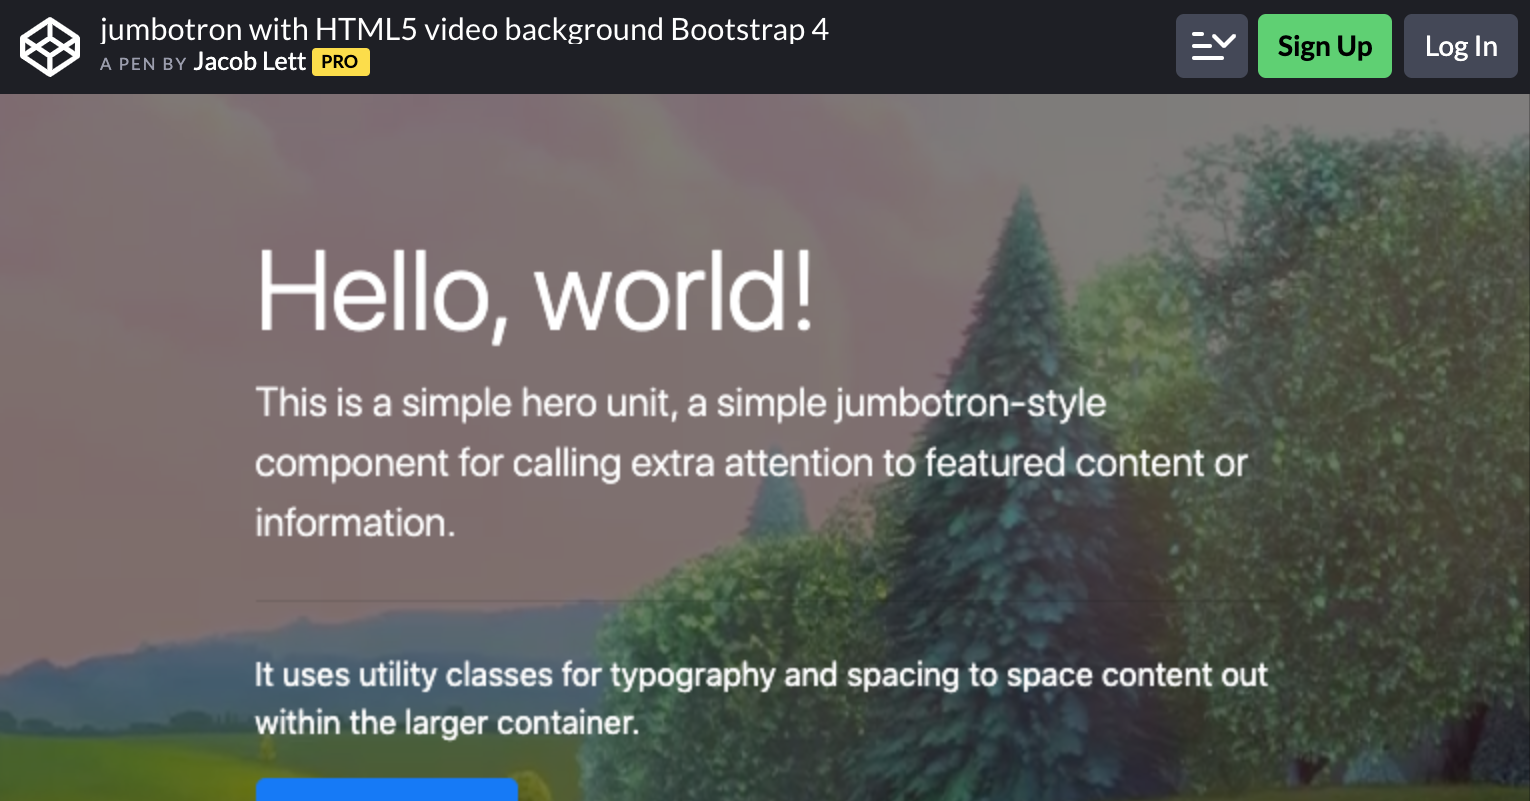 Jumbotron with HTML5 Video Background